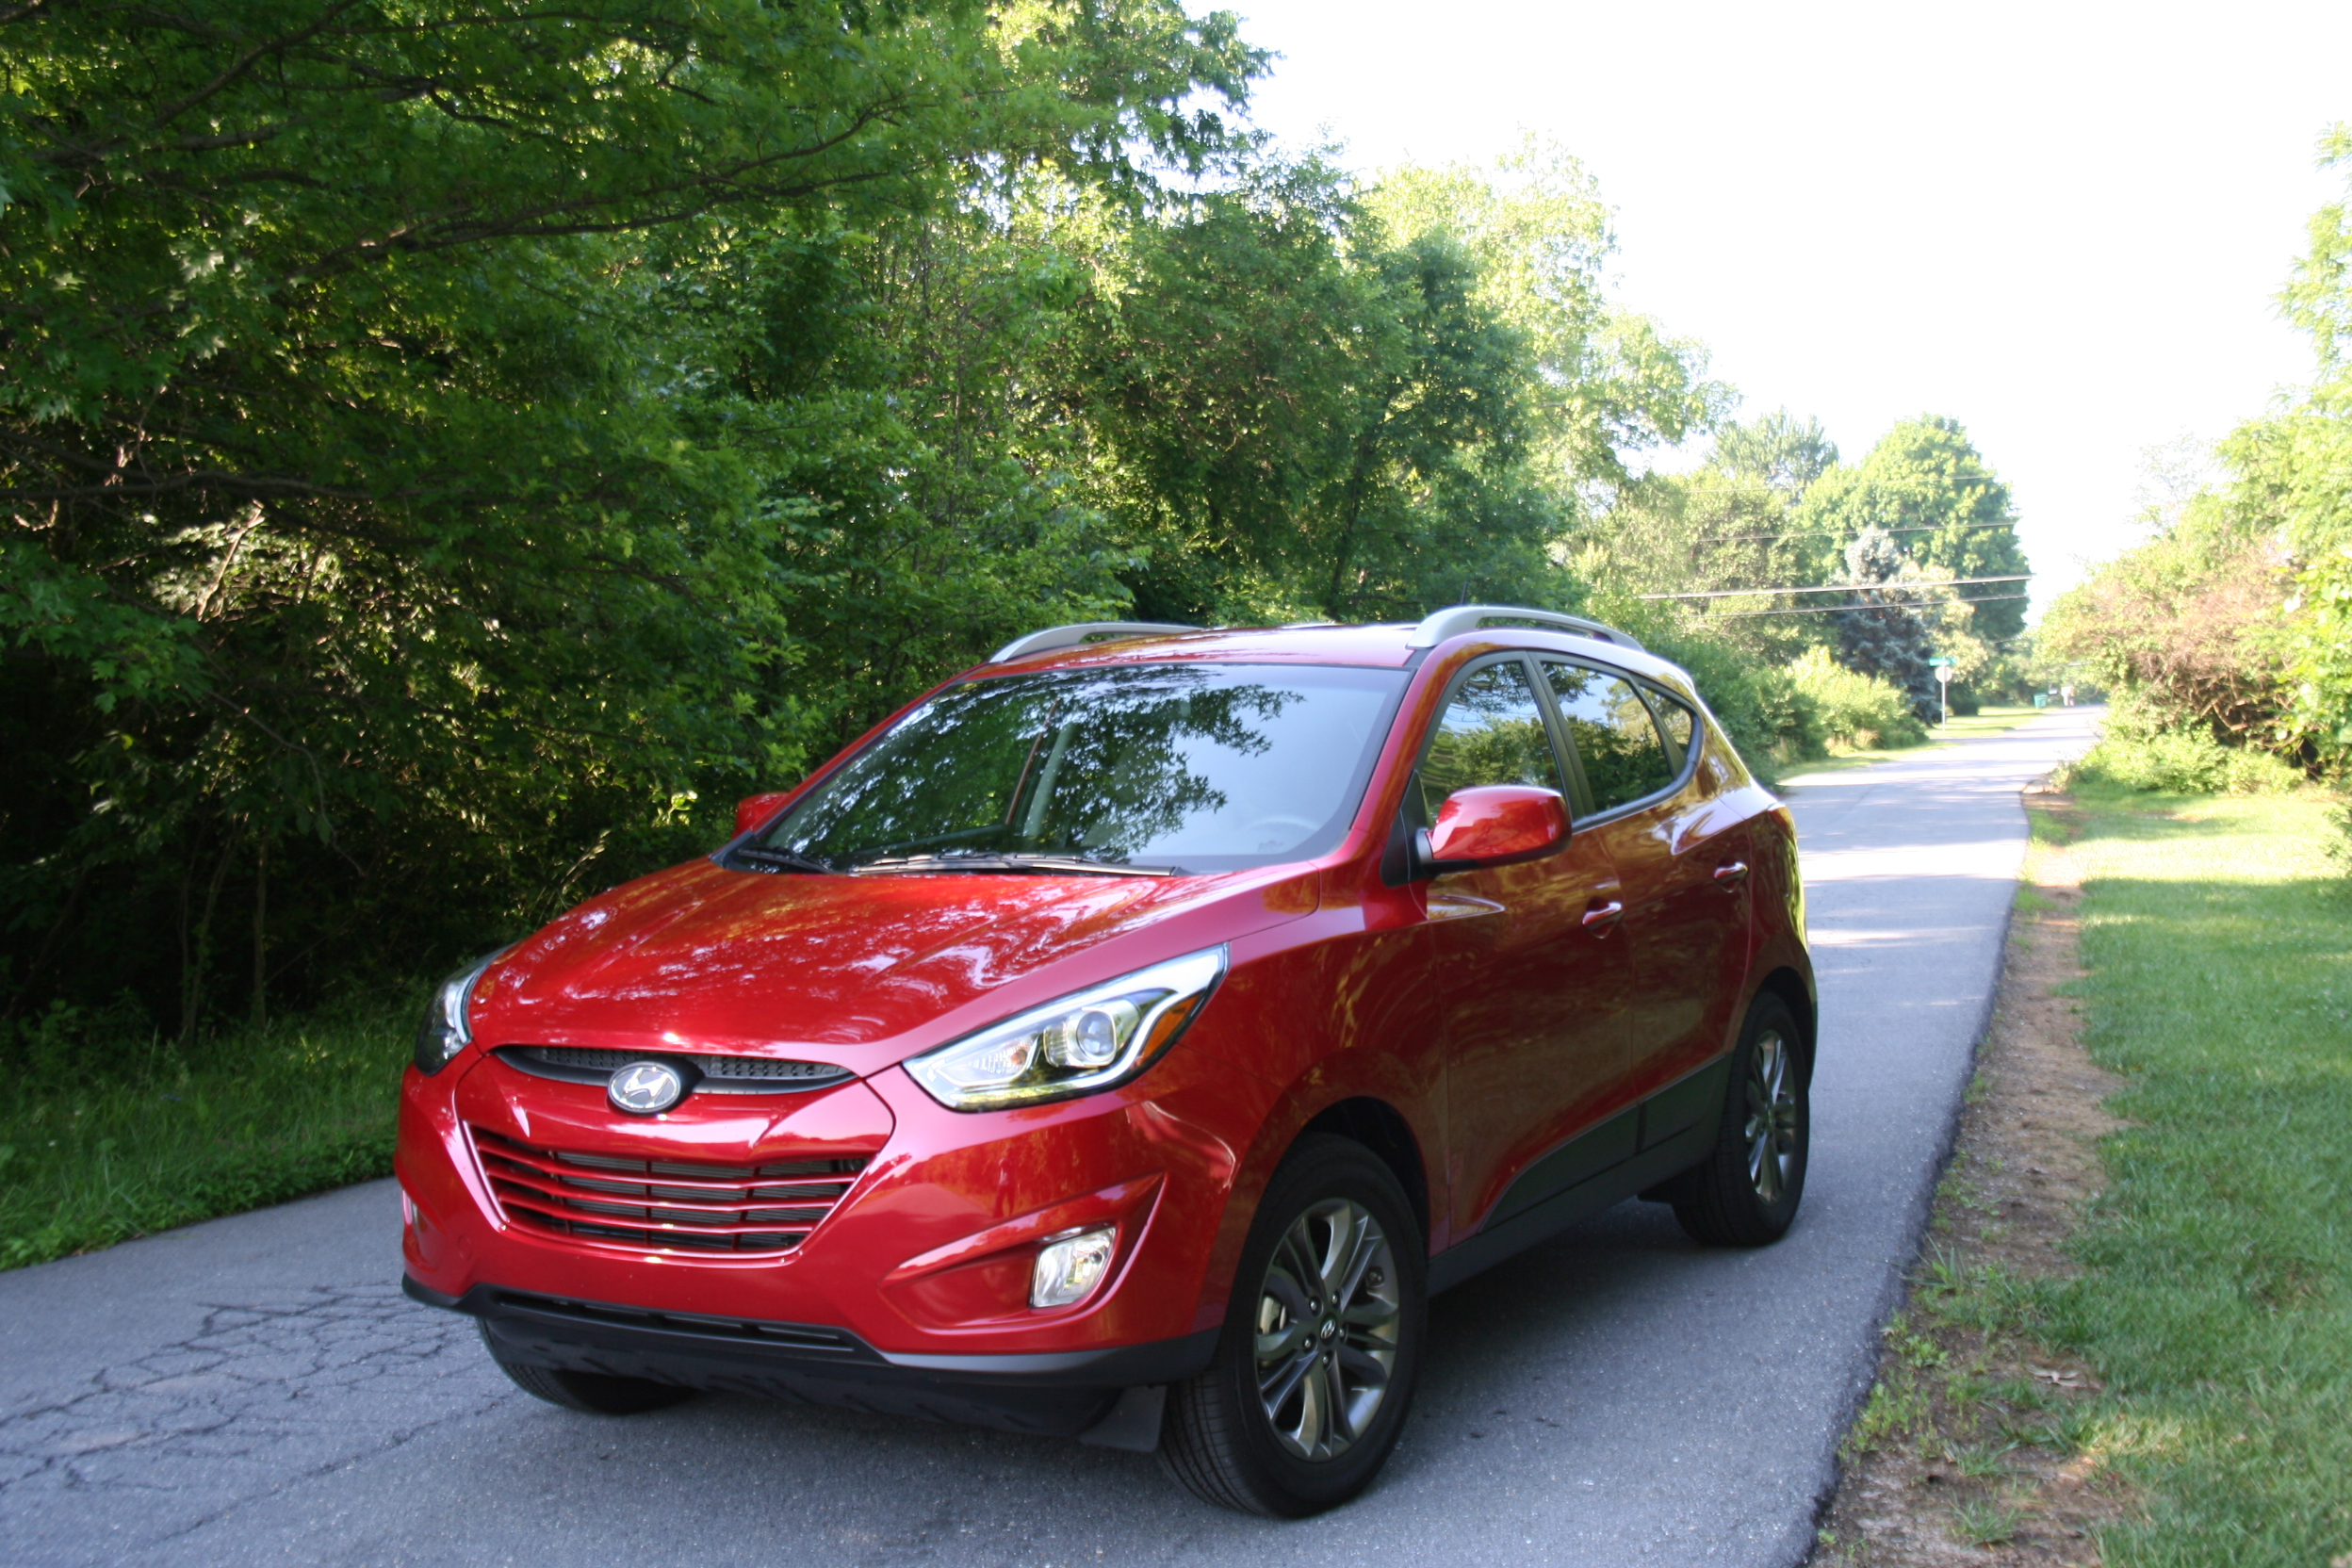 2014 Hyundai Tucson: An honest small crossover gets a makeover